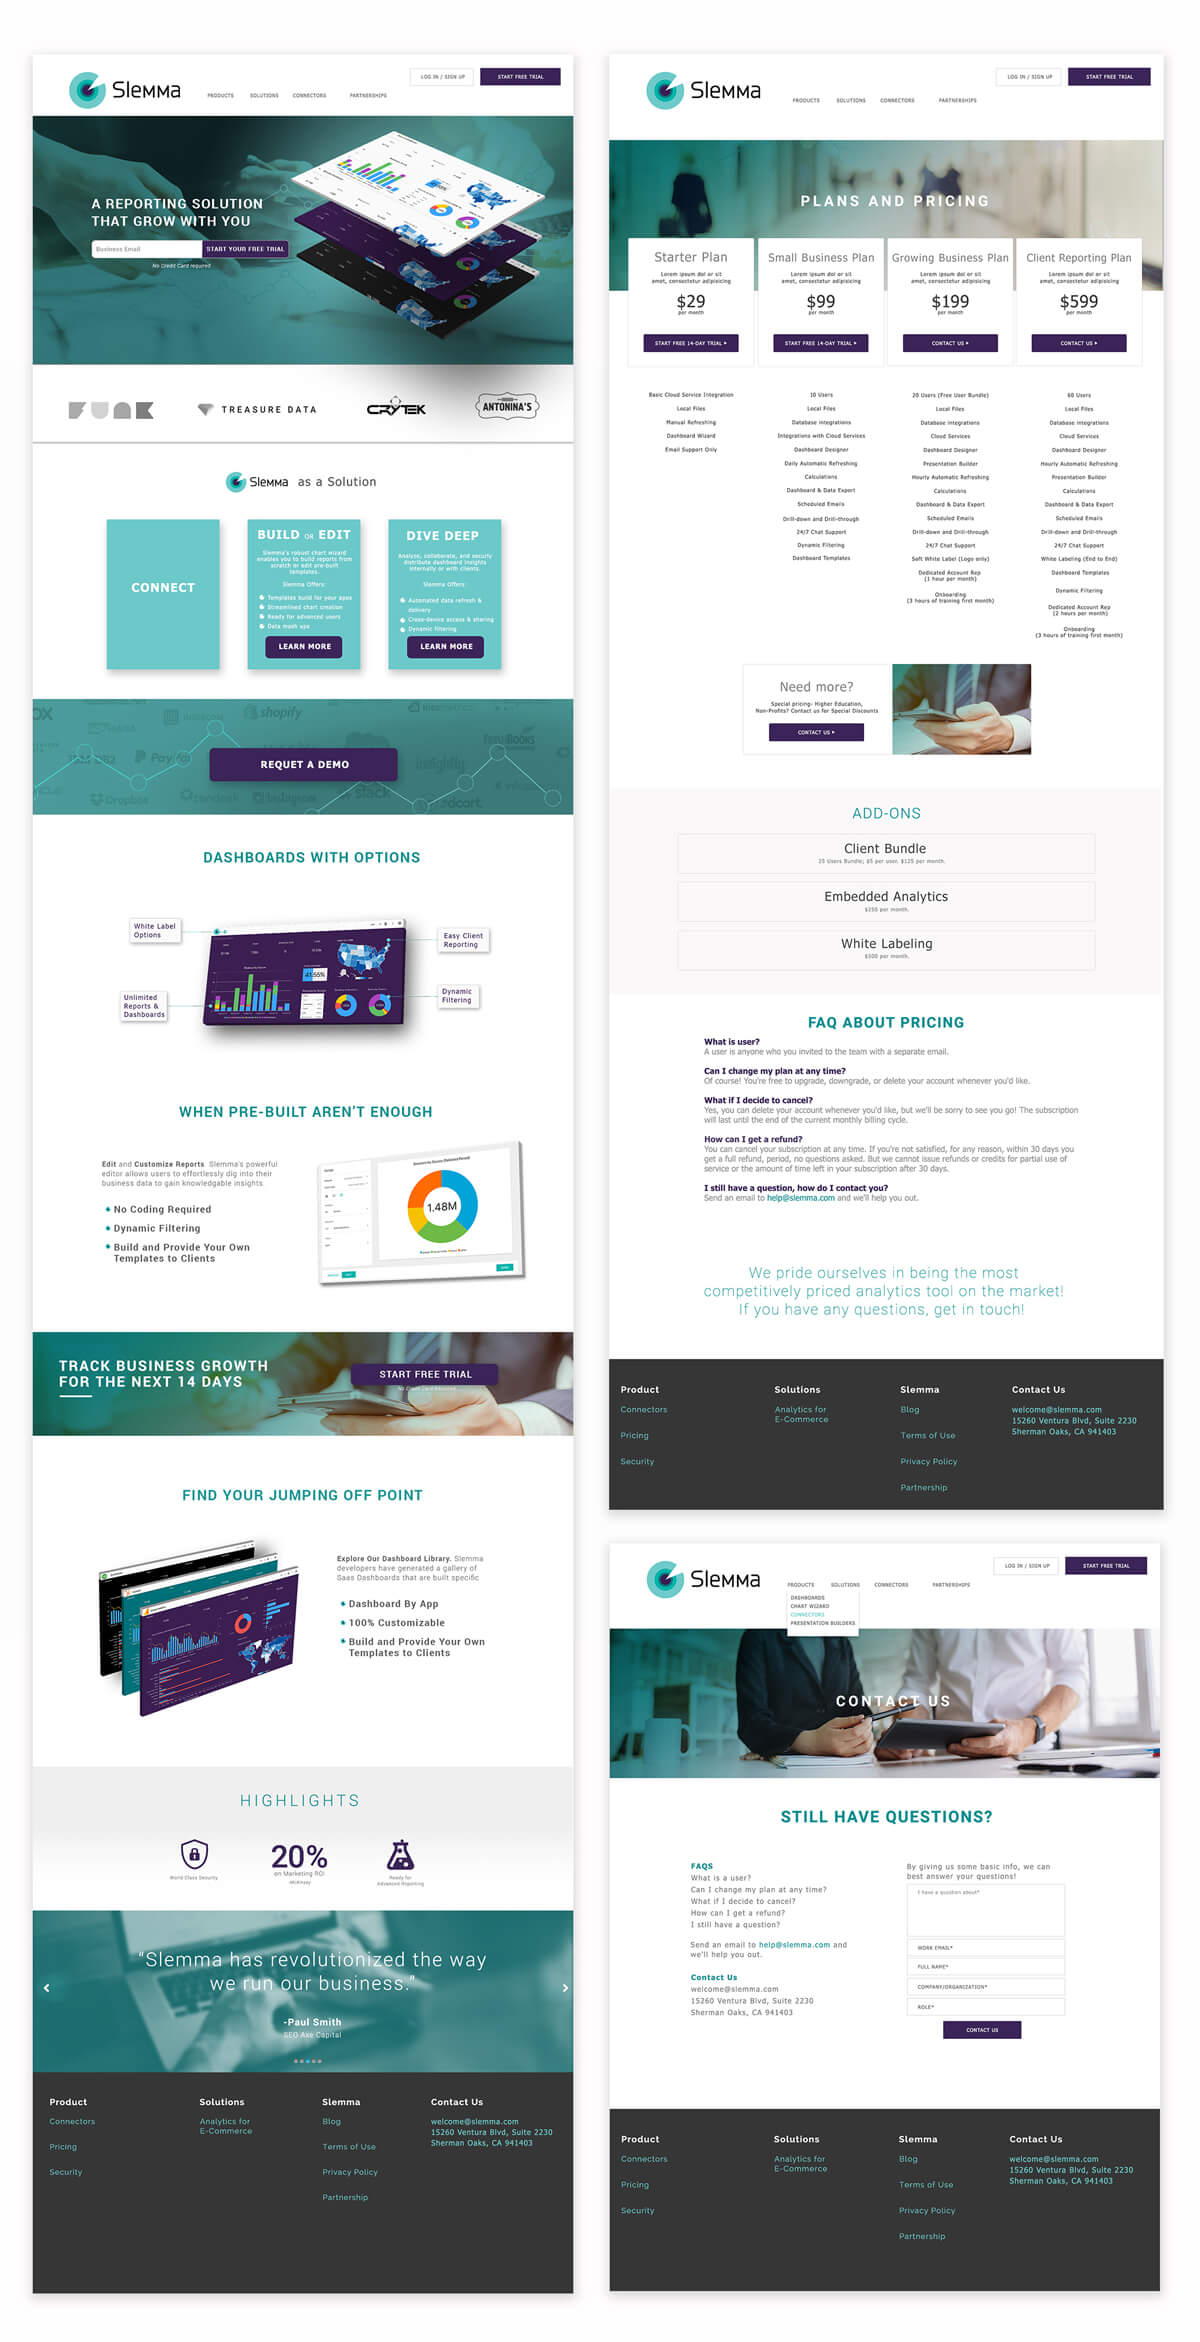 Slemma Website Design